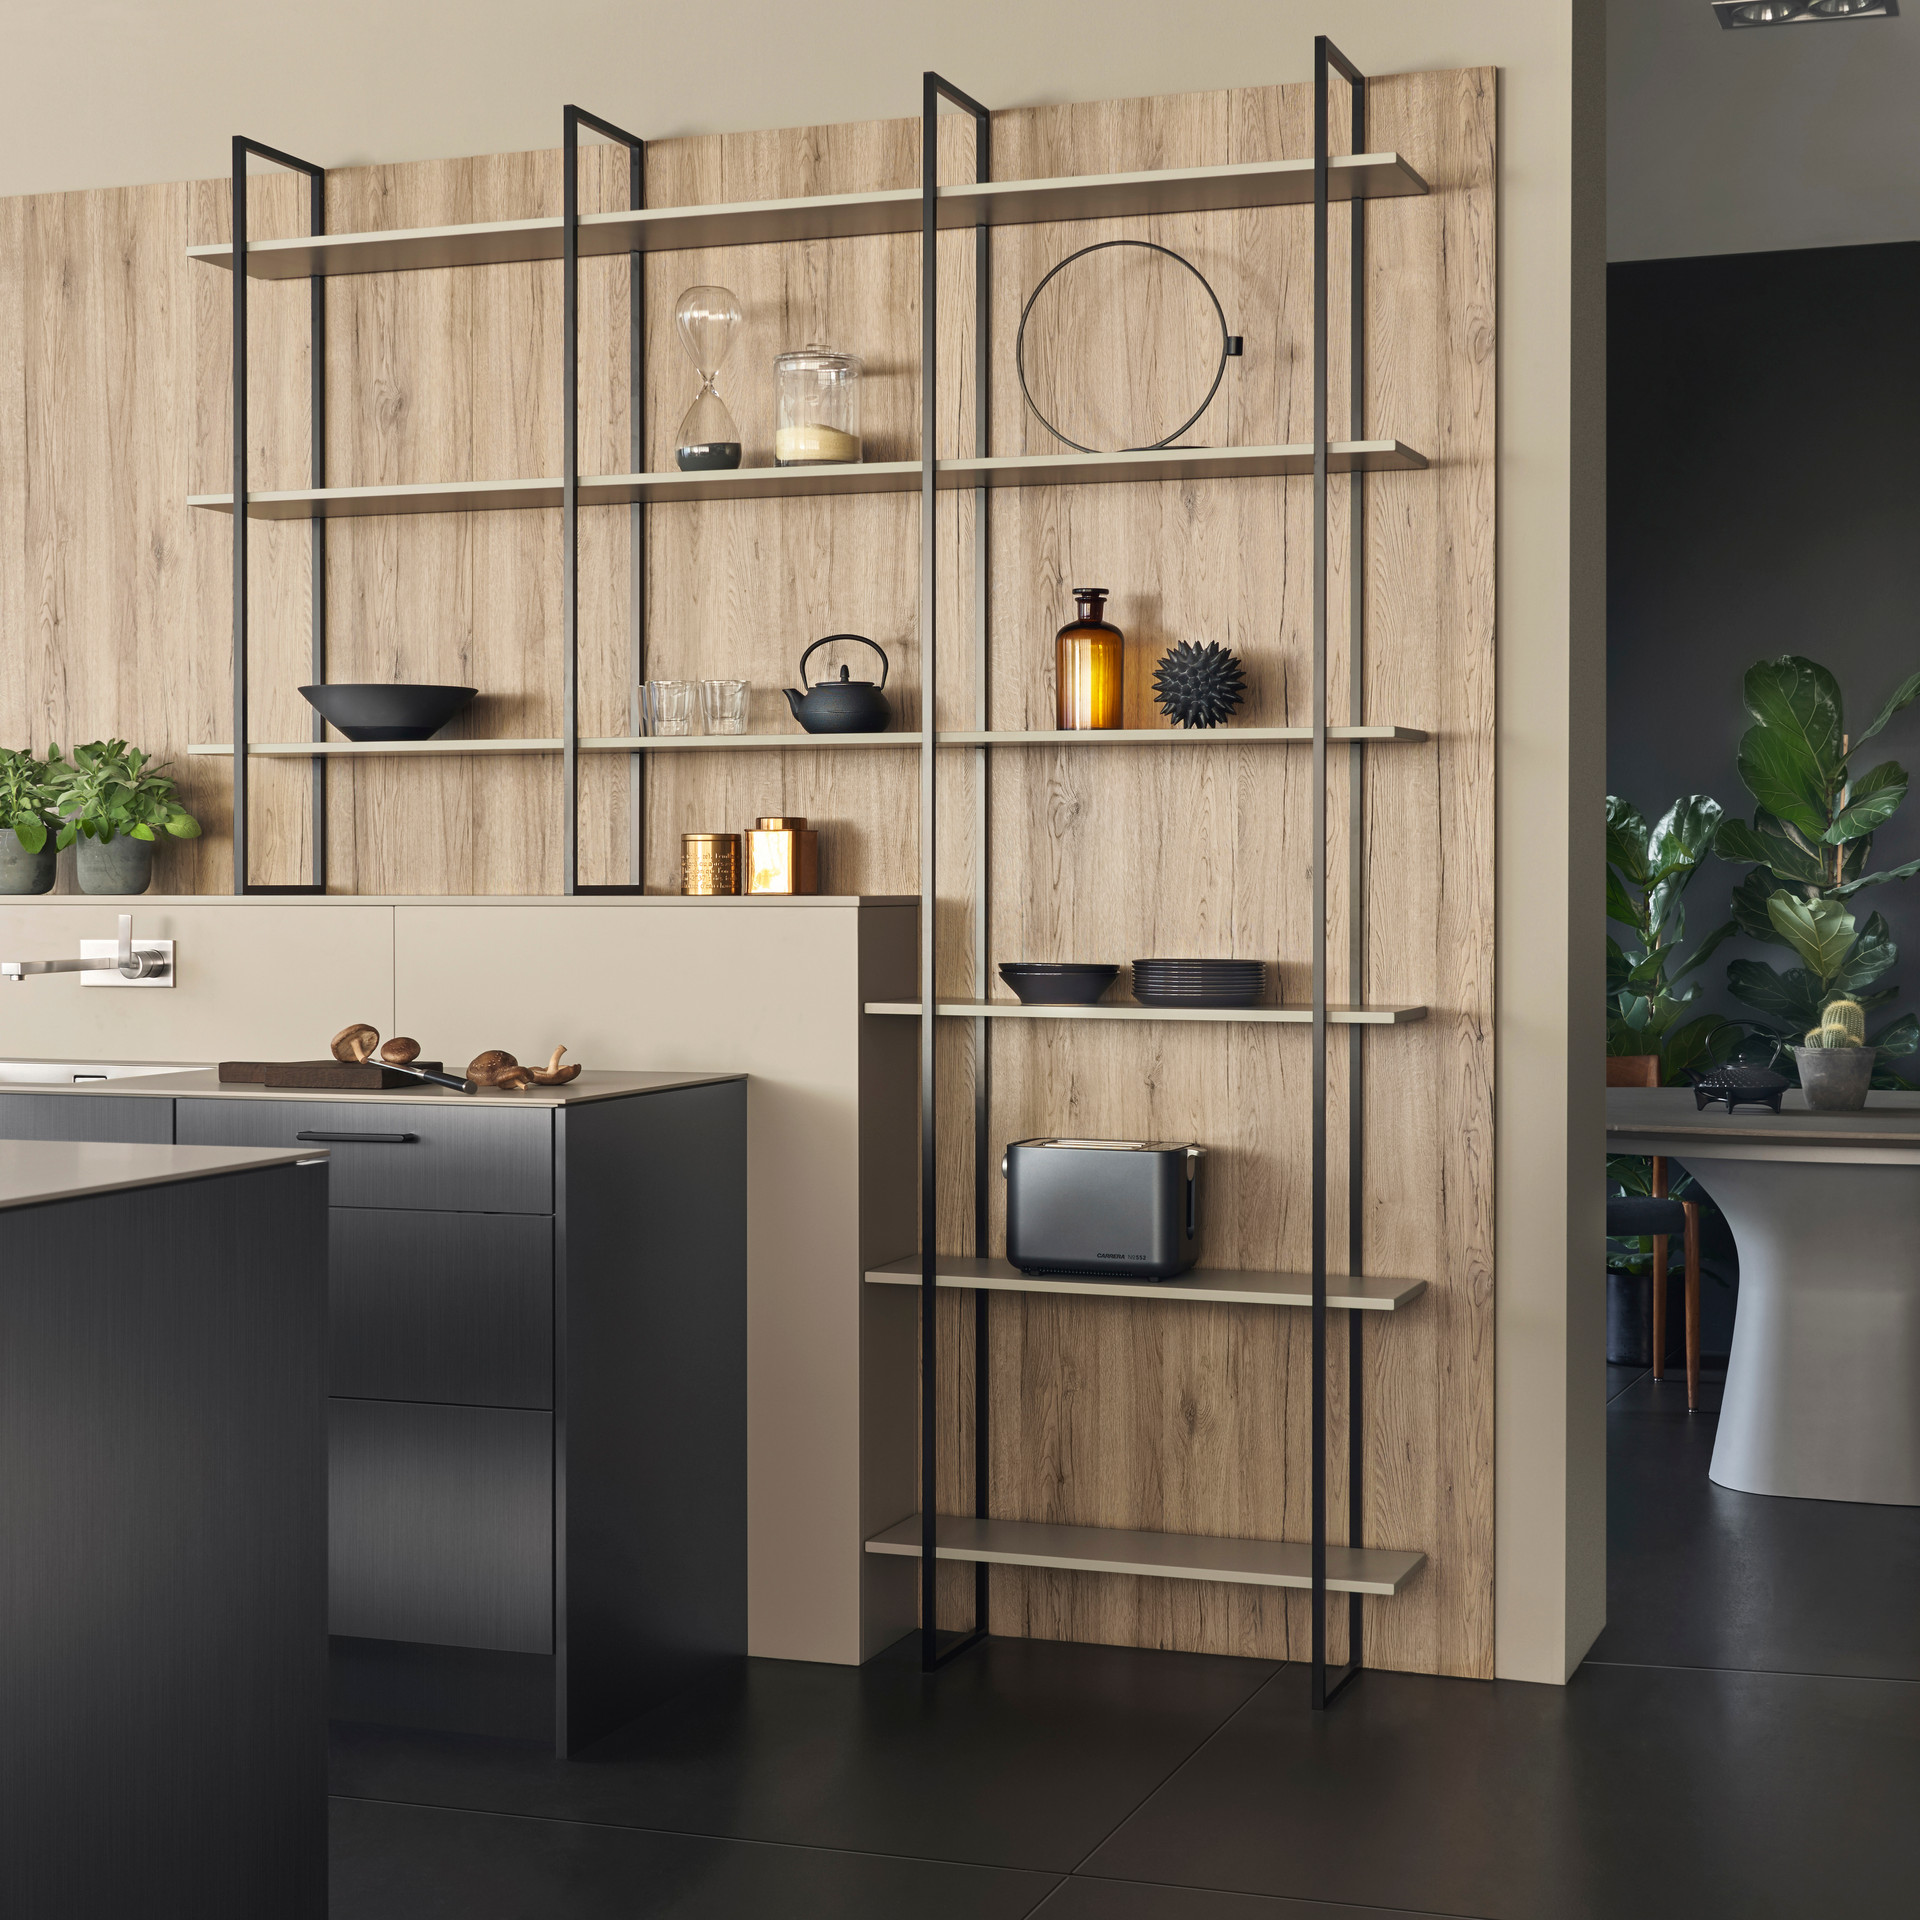 Leicht Metea metallic finish shelving system